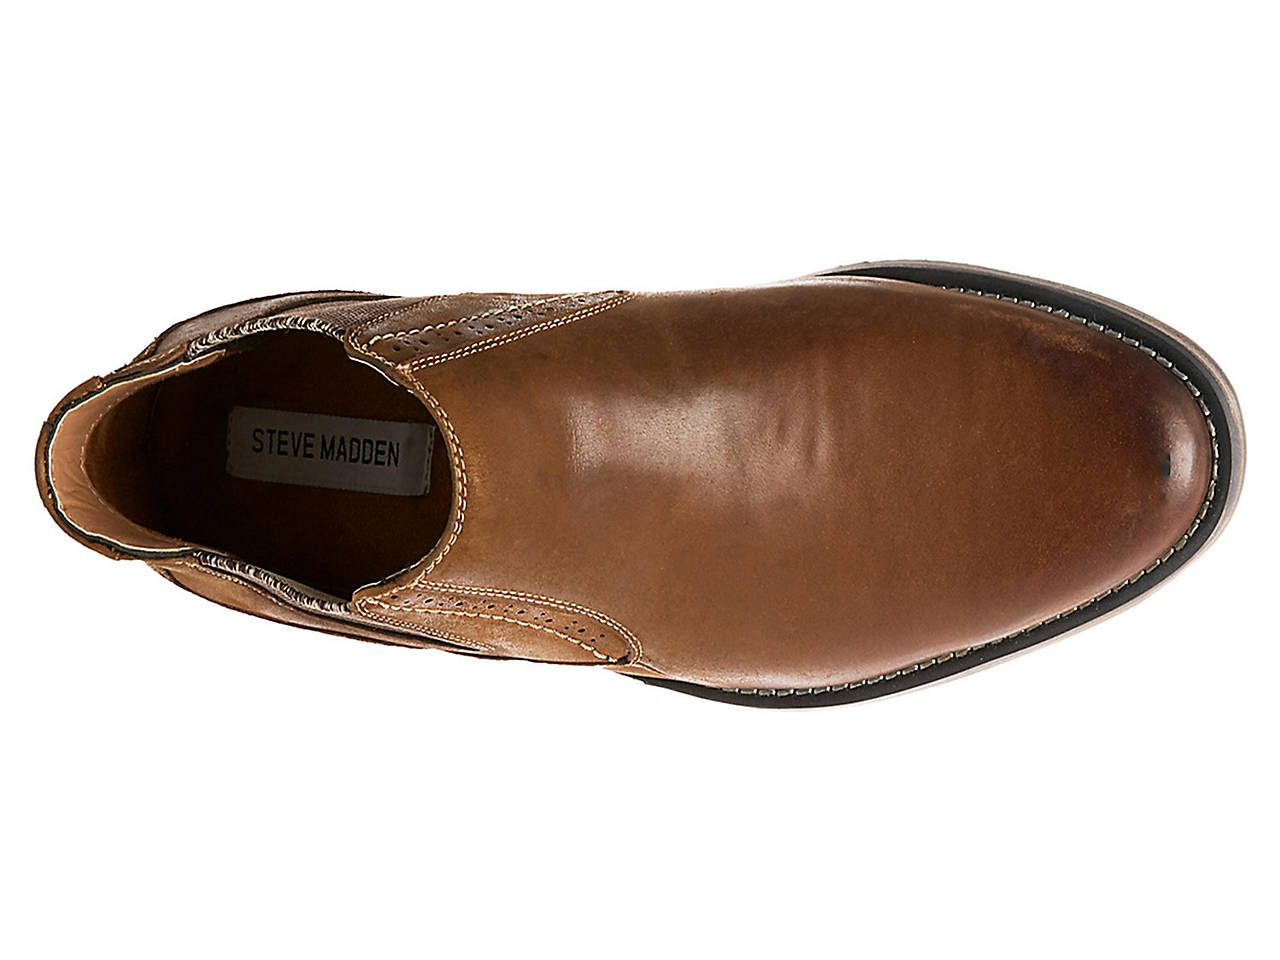 Steve Madden Paxton Boot Men's Shoes | DSW